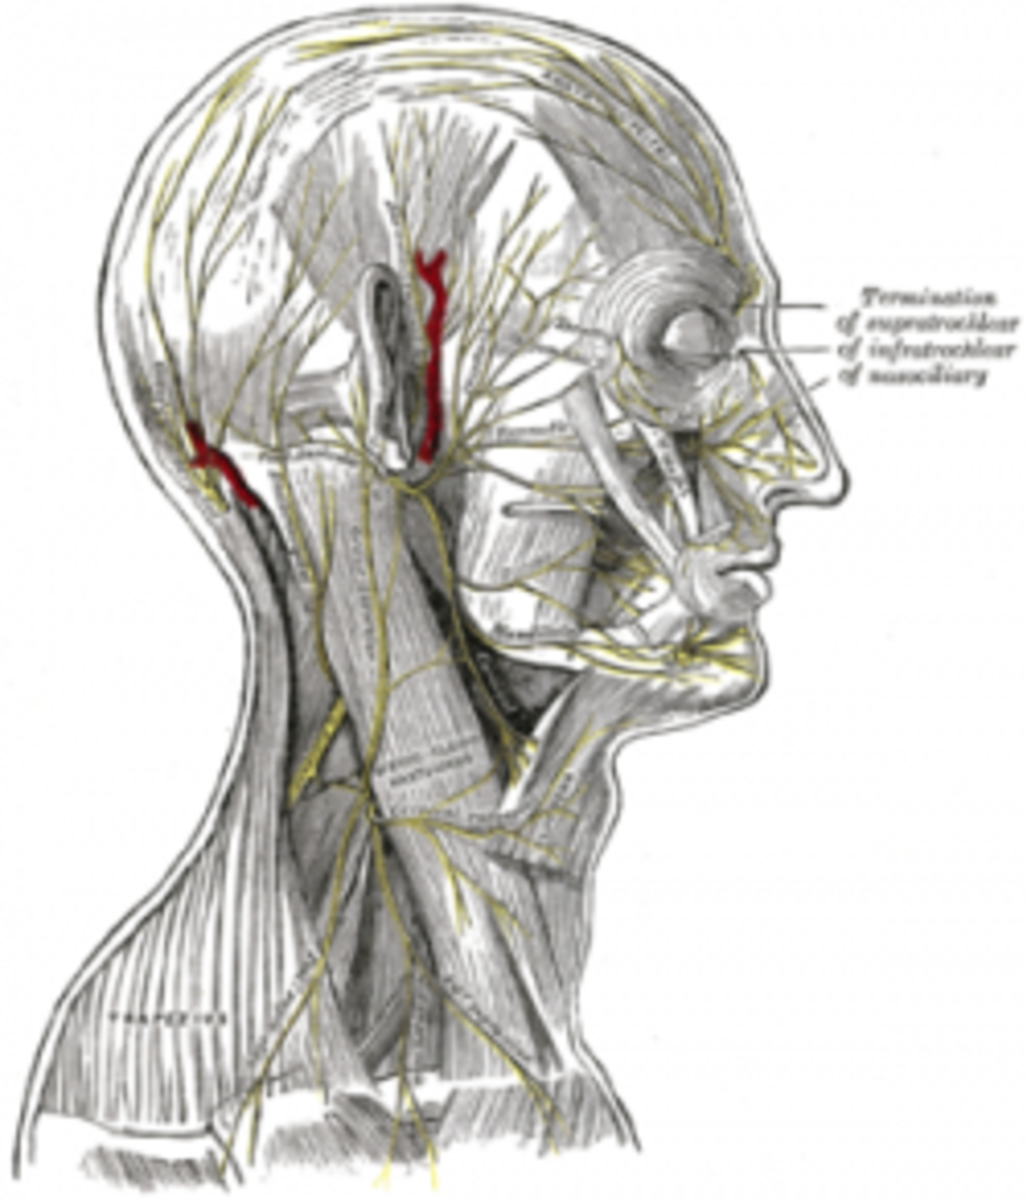 Facial nerve from Gray's Anatomy 1918 edition